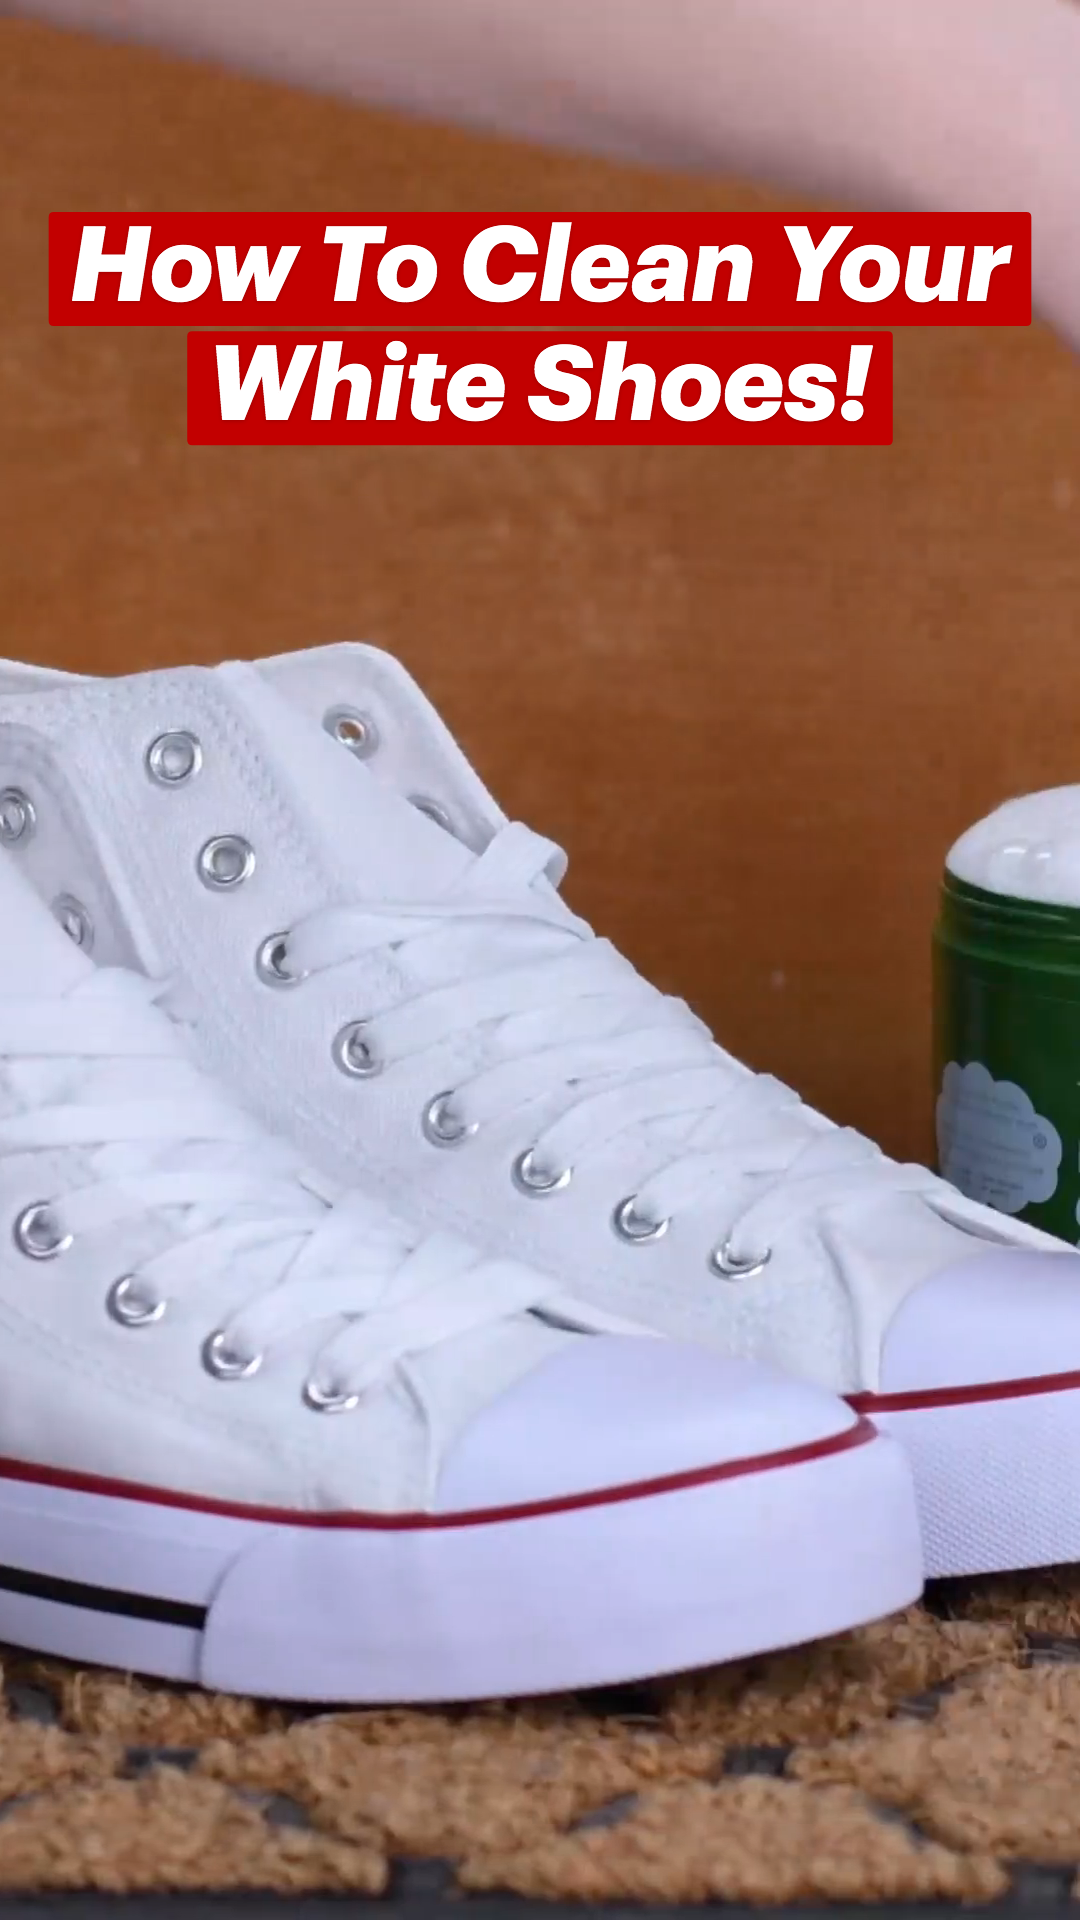 How To Clean Your White Shoes & More!